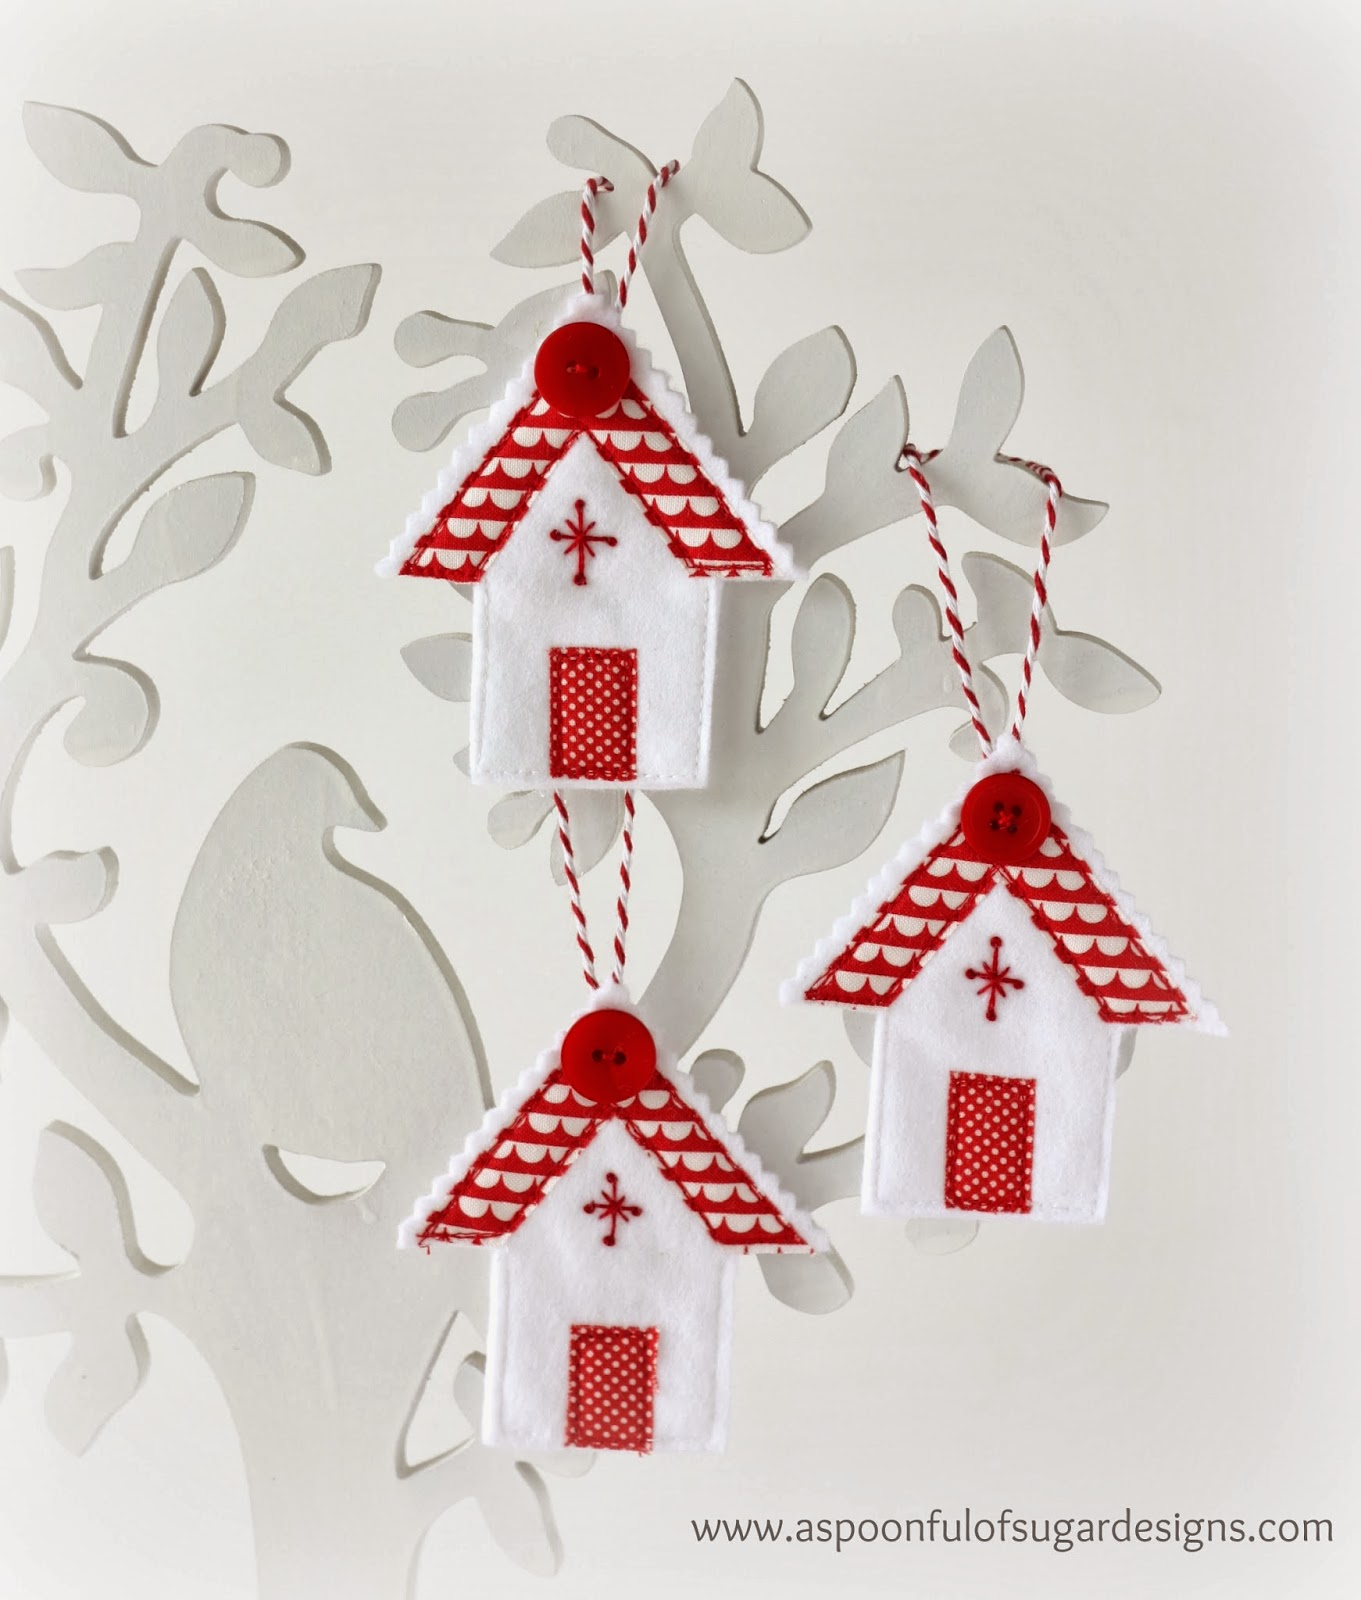 White house christmas ornaments by year - Christmas House Ornaments Are Our Home Made Tree Decorations This Year Made From White Felt With Fabric Appliqu And Embroidery Detail They Suit Our